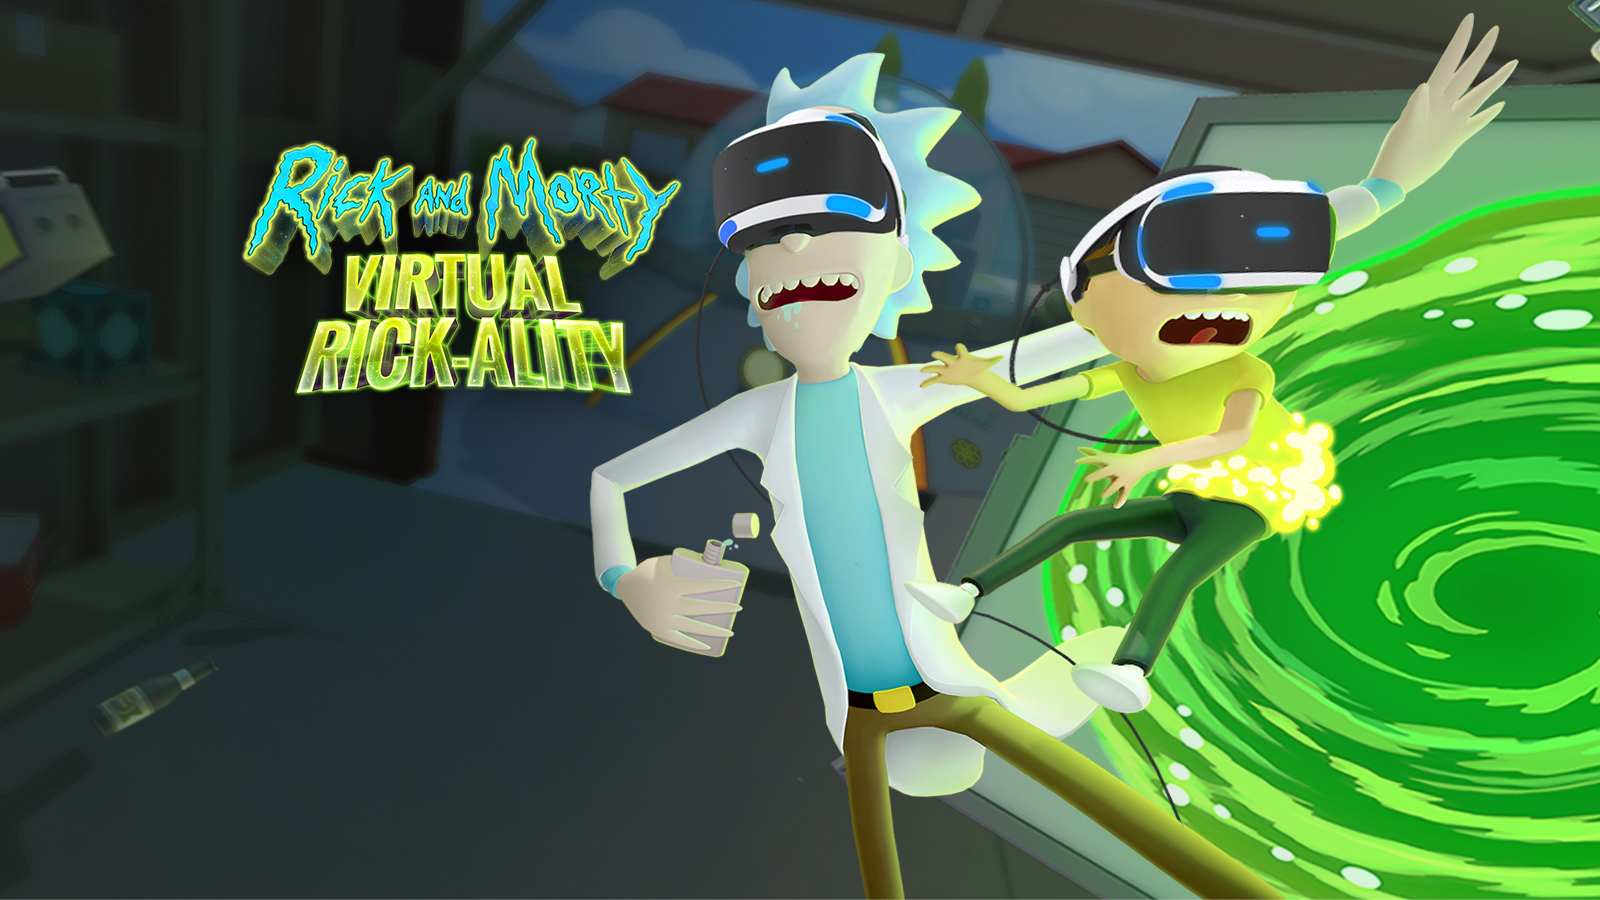 Rick And Morty Virtual Rick Ality Game Ps4 Playstation